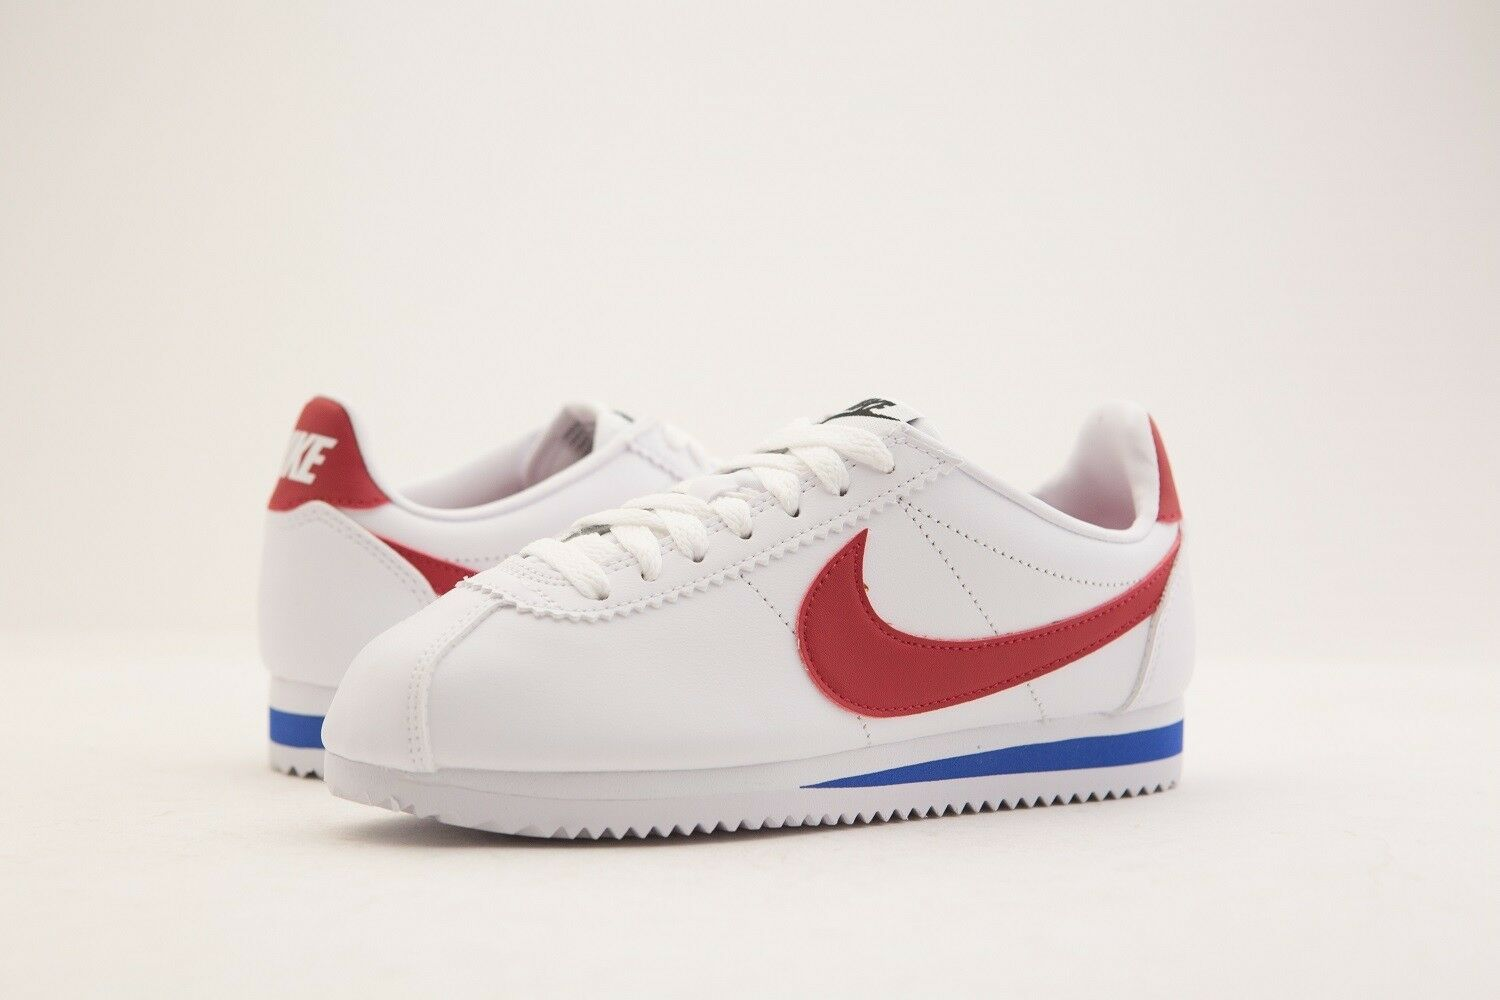 807471-103 Nike Women Classic Cortez Leather White Varsity Red Royal Brand discount